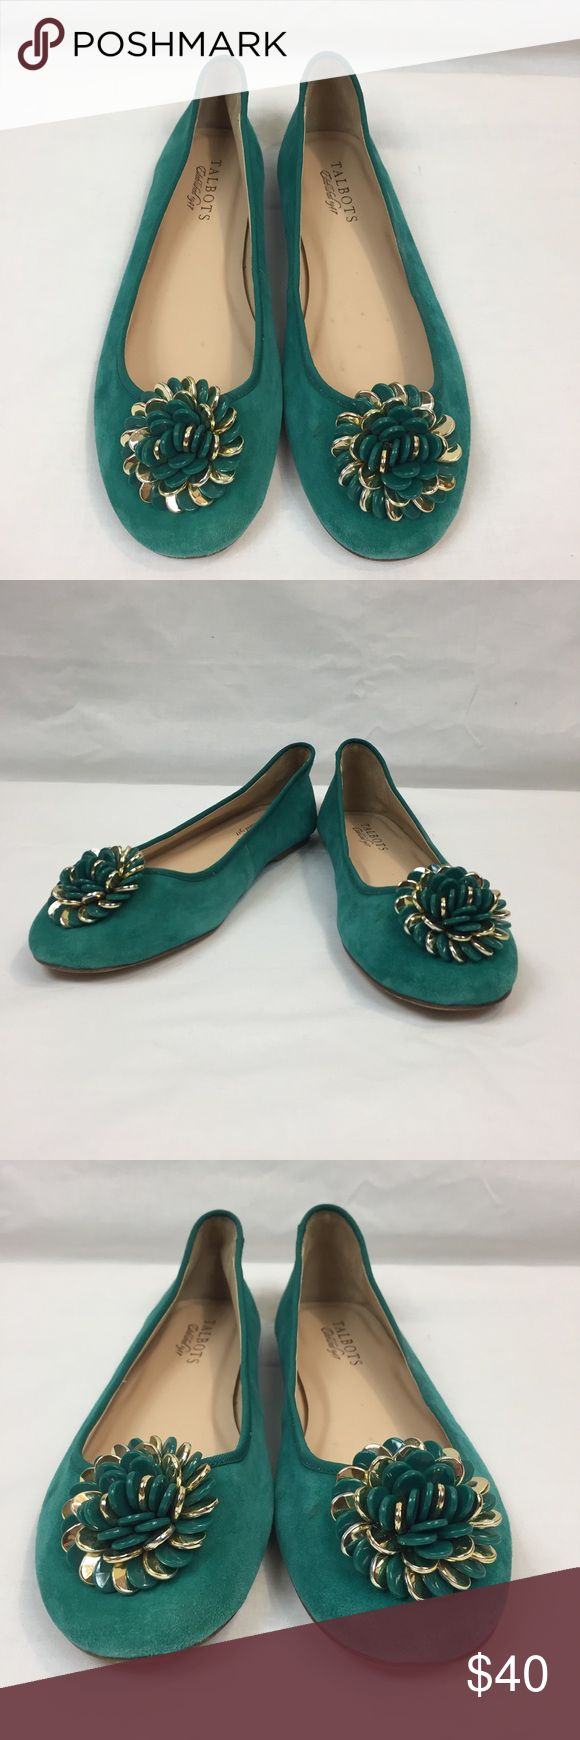 Tabolts DK French Teal Flats with Flower Details Adorable Teal Leather soled flats with beaded flowers. NWT with small imperfection on fabric of one shoe and the interior of the other. Pictures of measurements will be added soon. Talbots Shoes Flats & Loafers